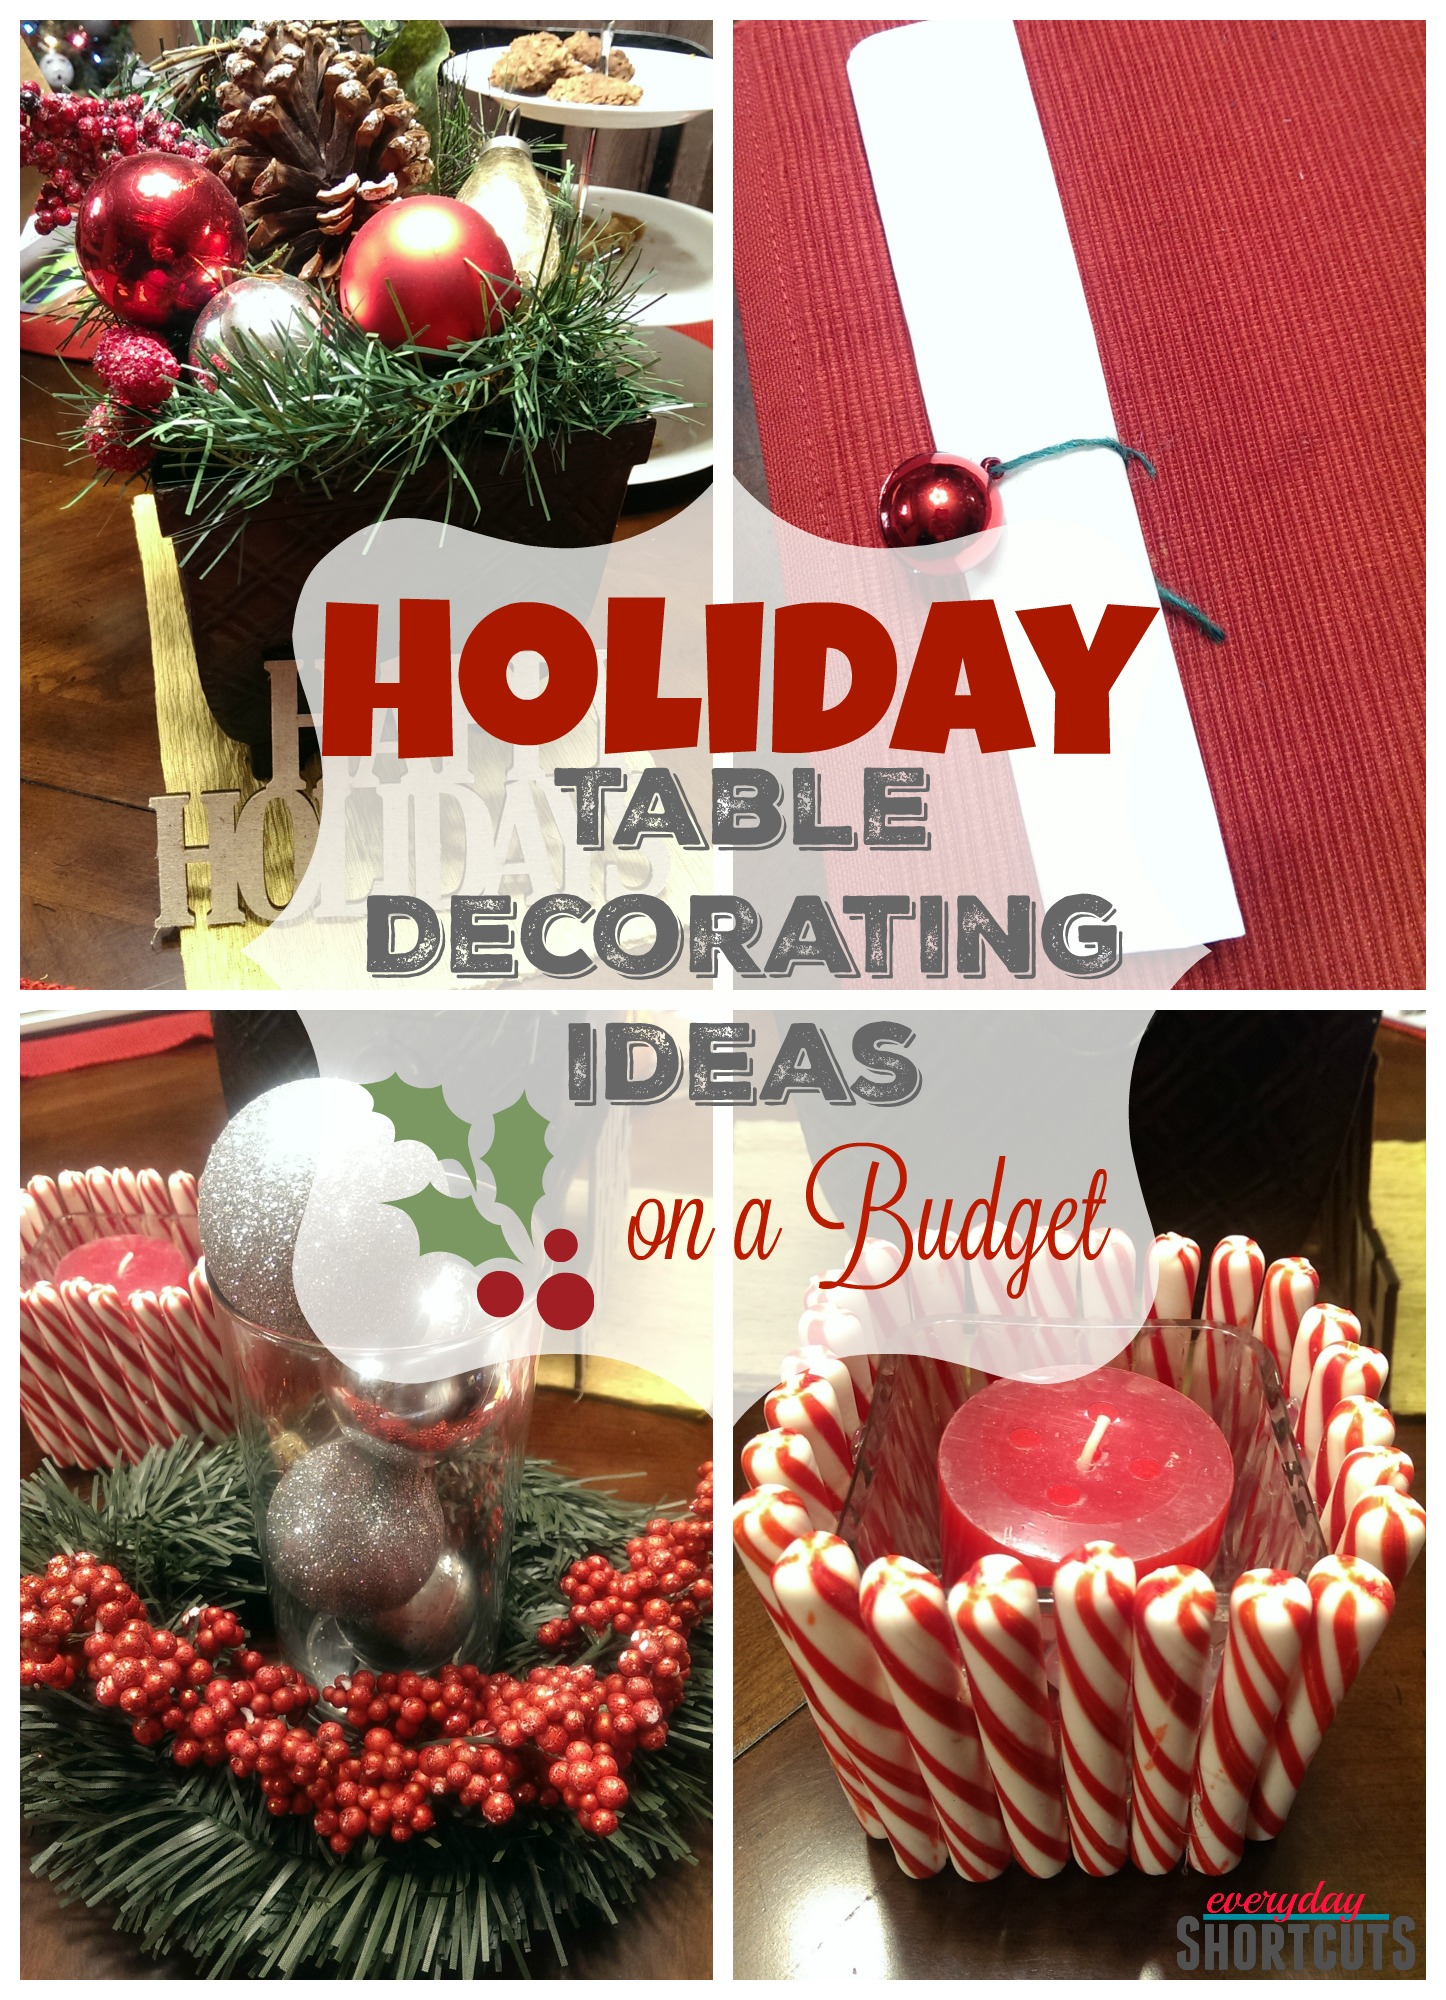 holiday-table-decorating-ideas-on-a-budget